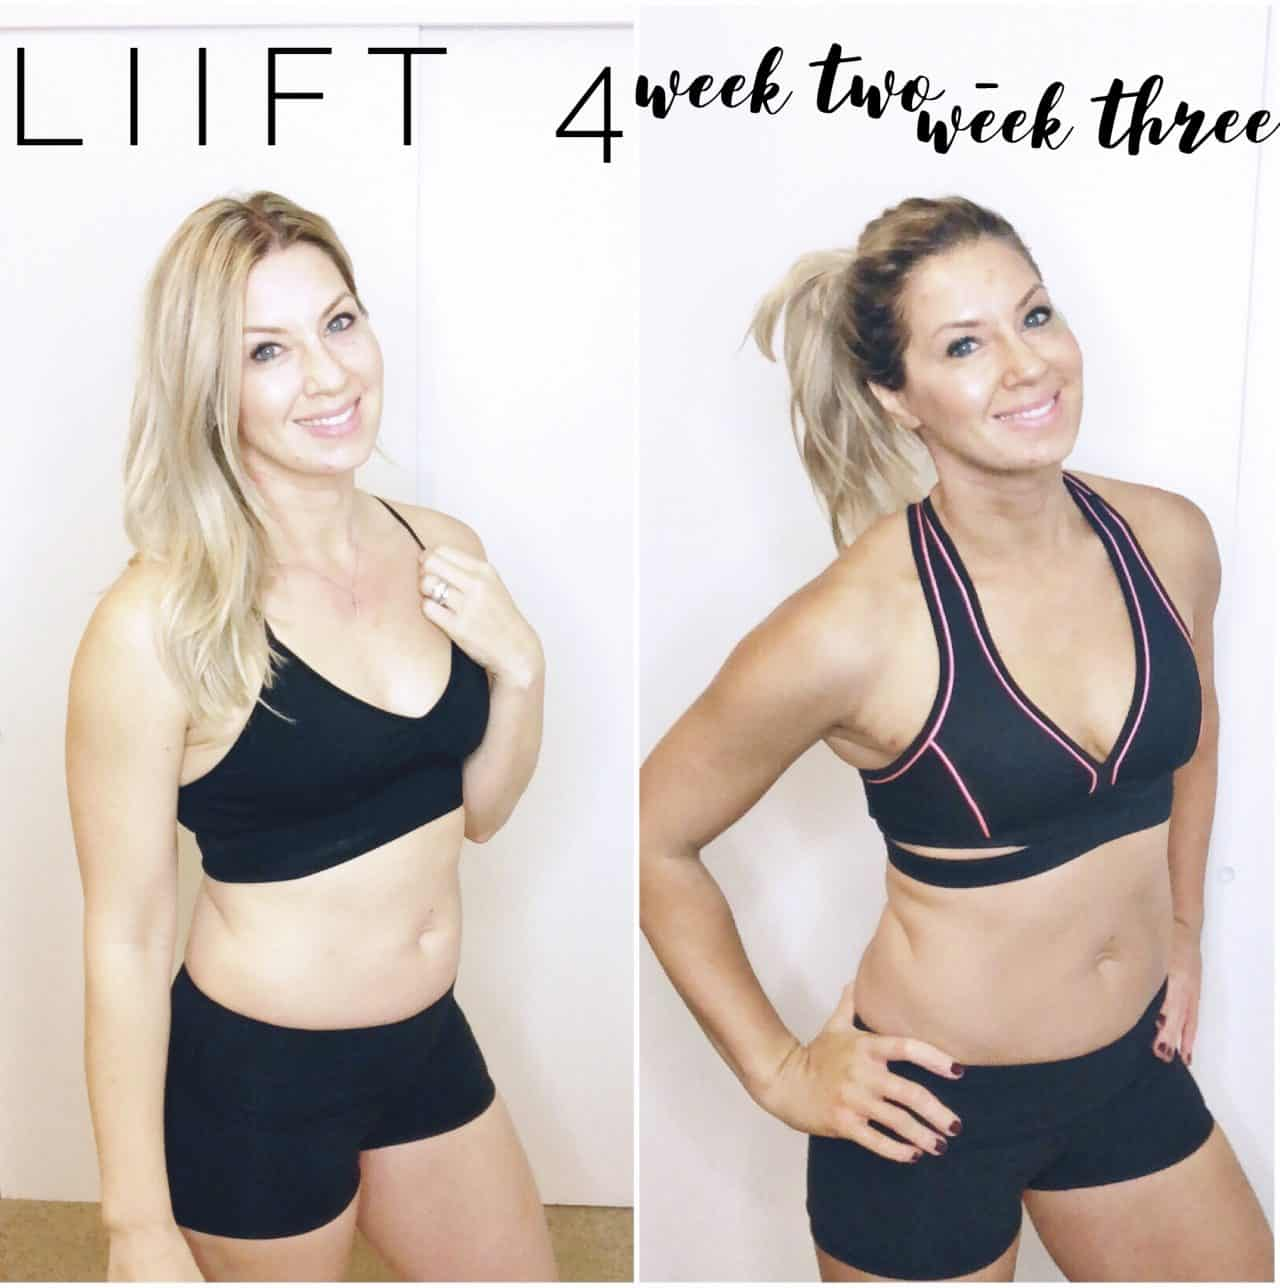 liift 4, lift 4, lift 4 review, liift 4 review, lift 4 beachbody, liift 4 beachbody, lift 4 transformation, lift 4 mom, liift 4 mom, liift 4 weight loss, lift 4, lift 4 review, lift 4 weight loss, lift 4 mom, liift 4 weight loss transformation, why liift 4, lift 4 moms, liift 4 moms, mom lift 4, mom liift 4, moms liift 4, moms lift 4, lift 4 2018, liift 4 2018